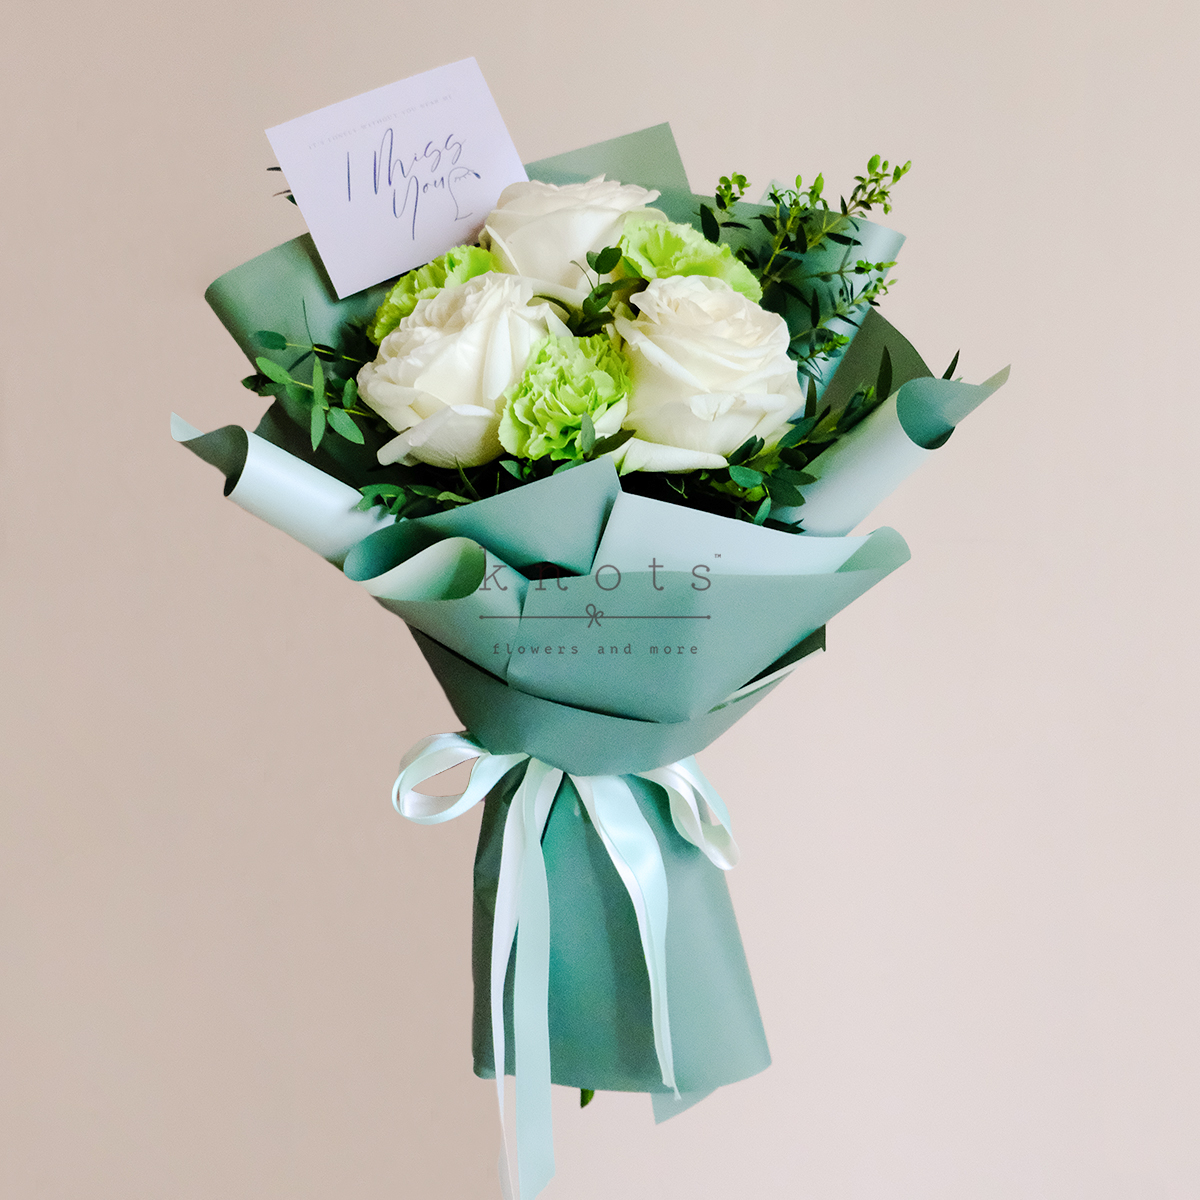 I'm With You (White Ecuadorian Roses And Green Carnation Bouquet)